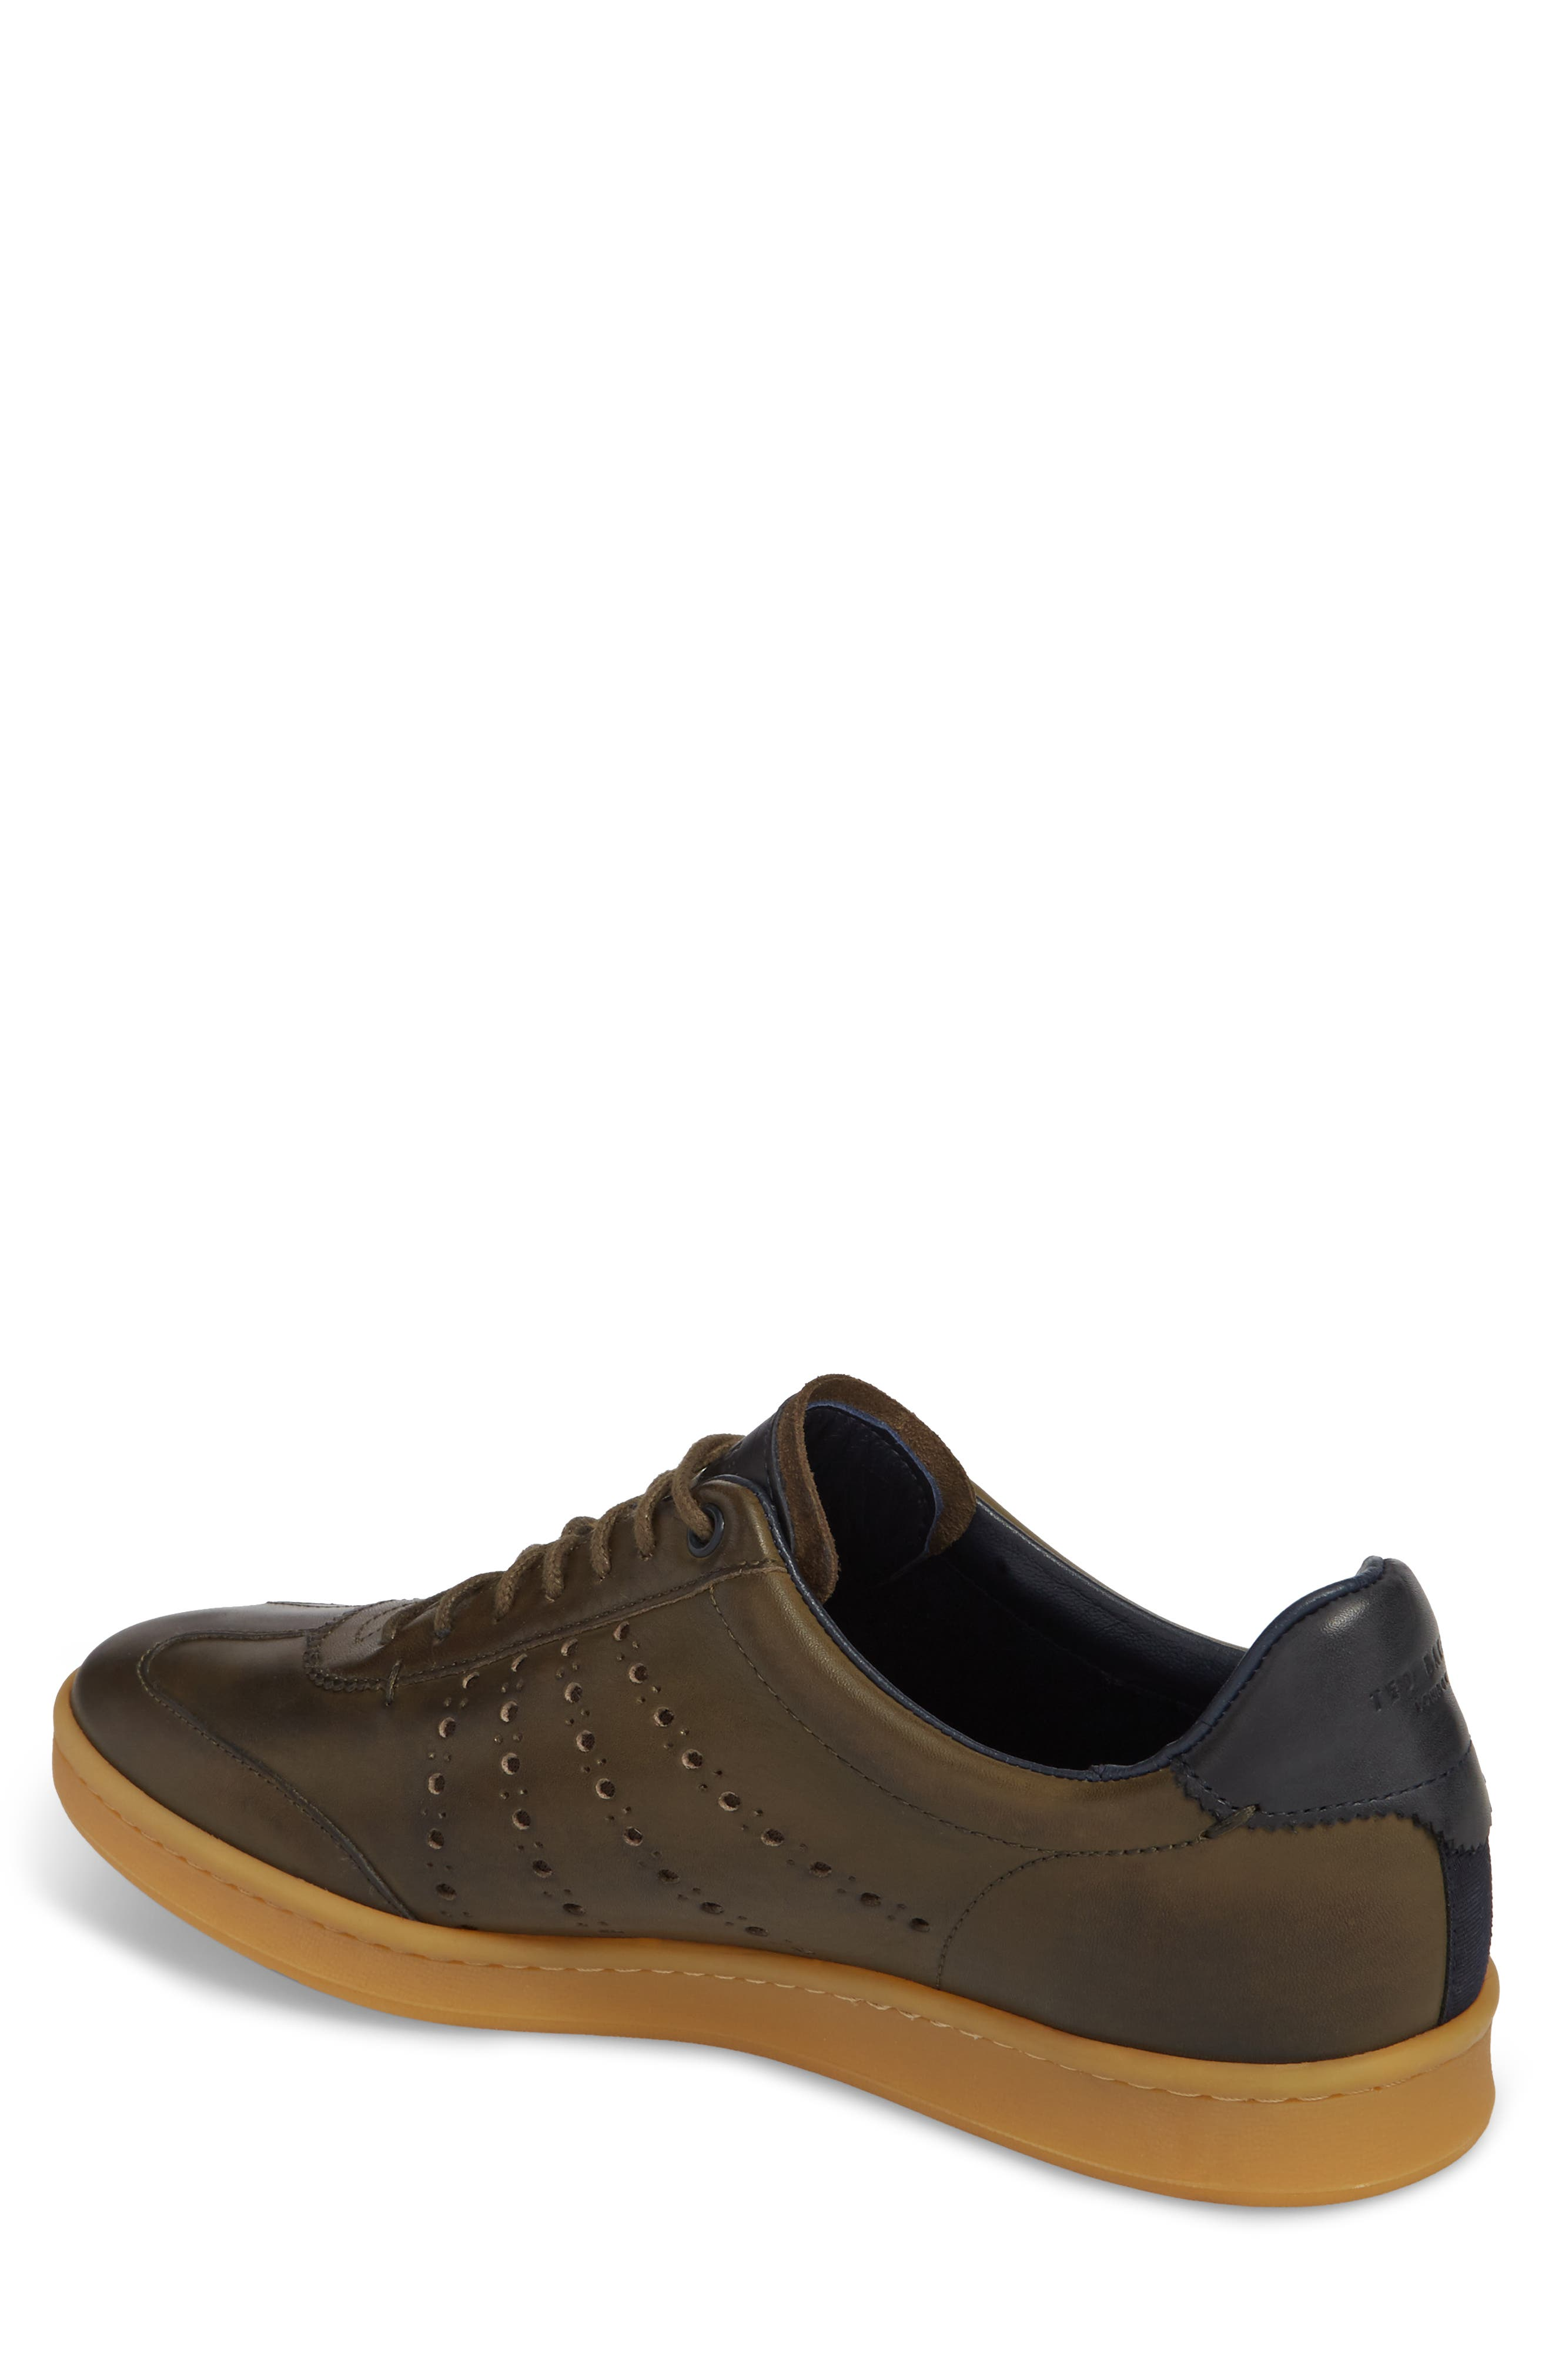 Orlee Sneaker,                             Alternate thumbnail 2, color,                             Dark Green Leather